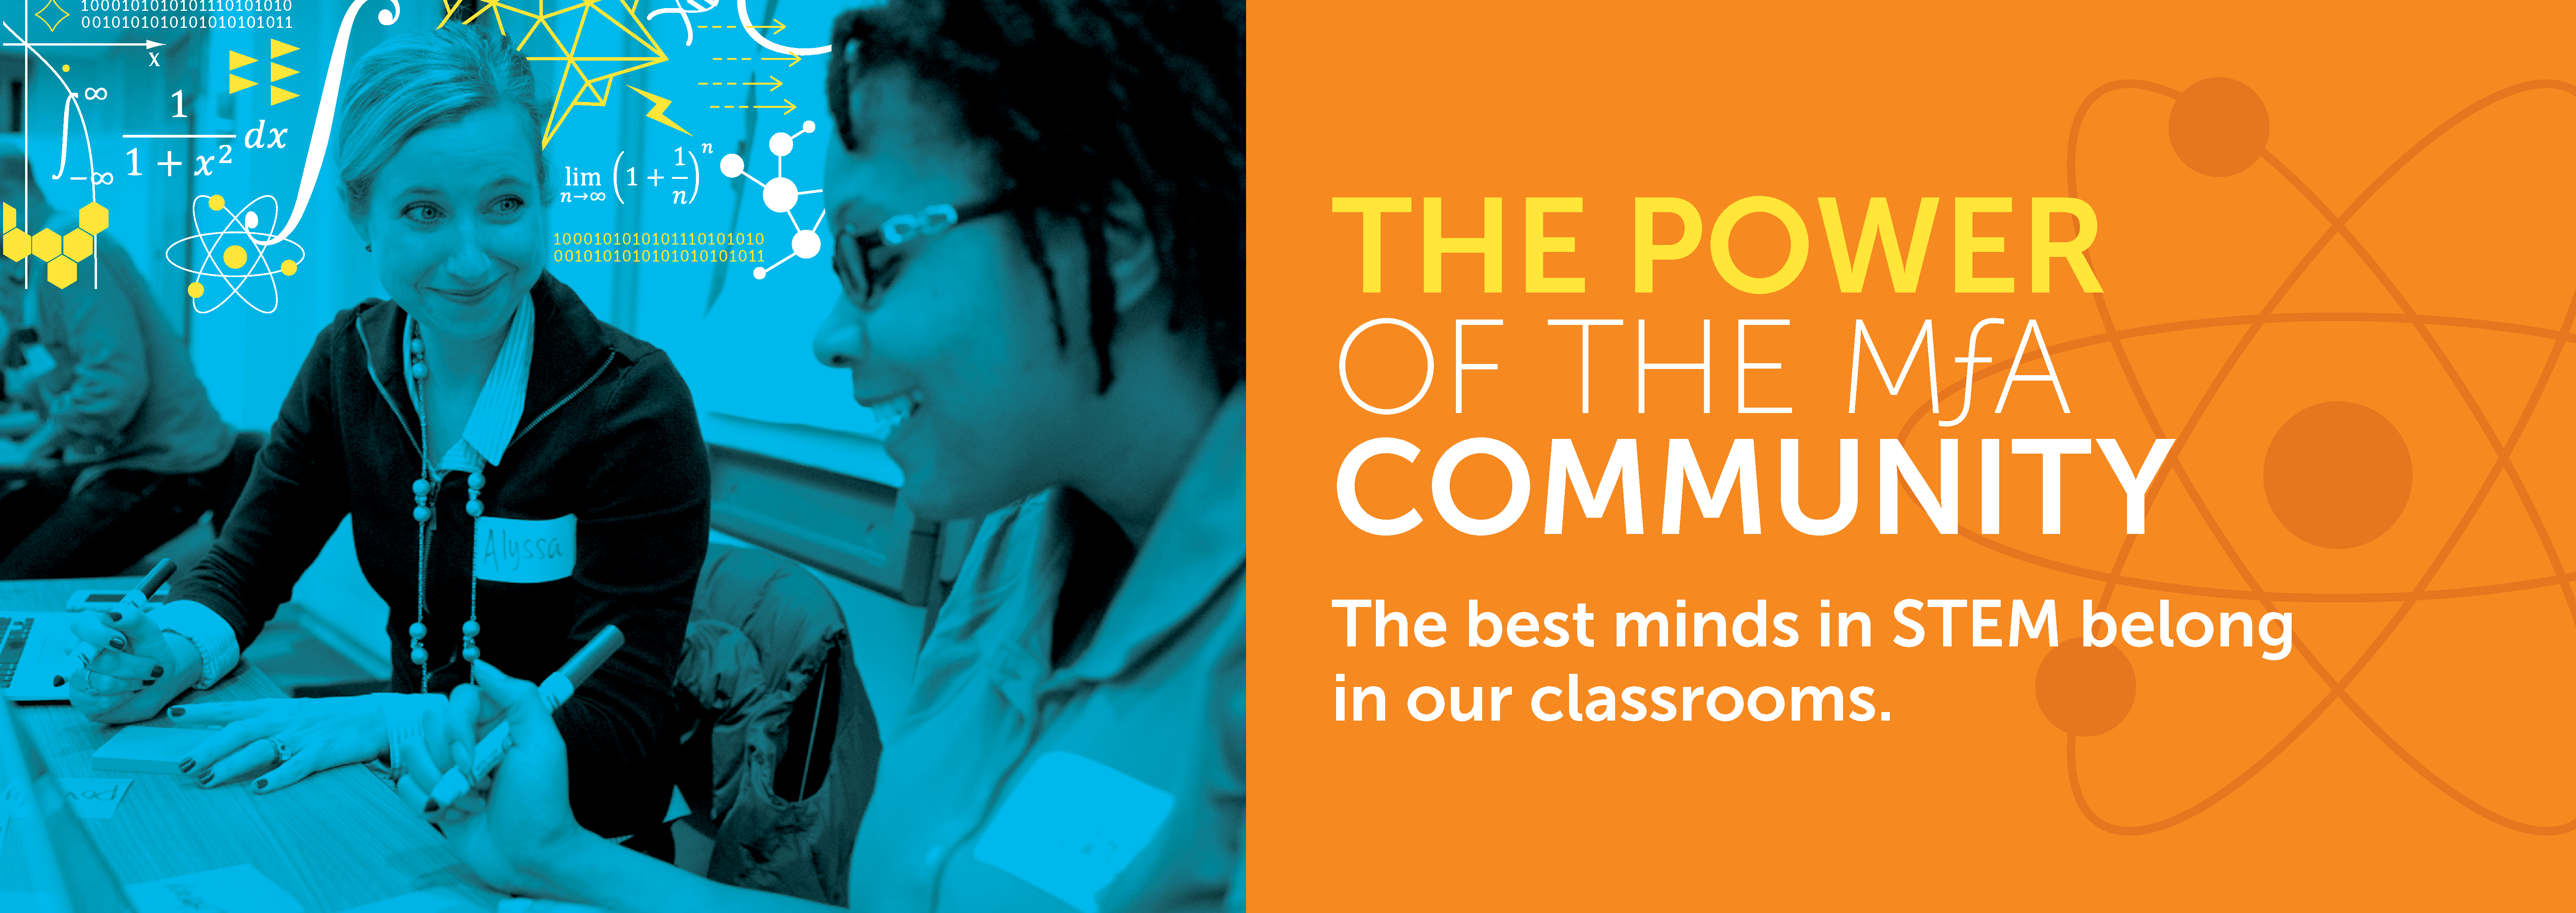 The power of the MfA community